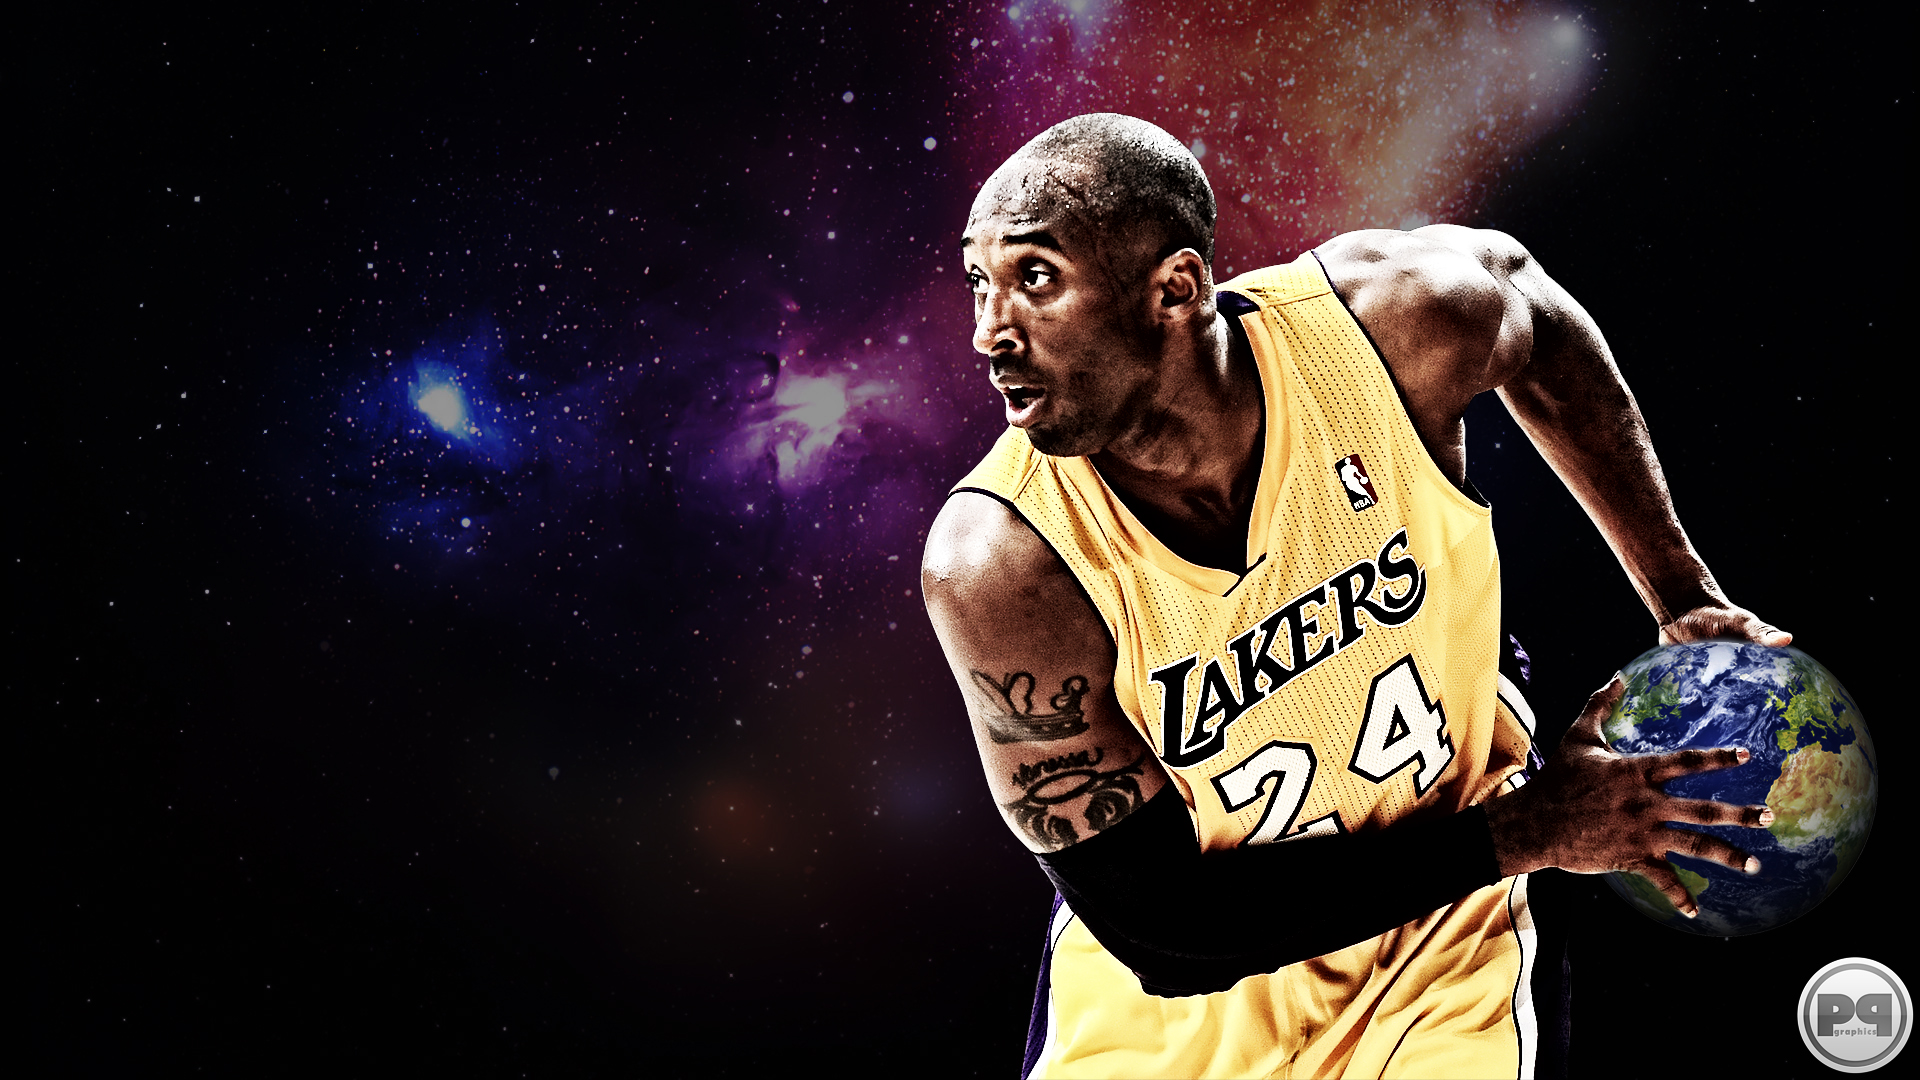 New Nba Kobe Bryant Los Angeles Lakers Basketball By - Jogador Kobe Los Angeles Lakers , HD Wallpaper & Backgrounds